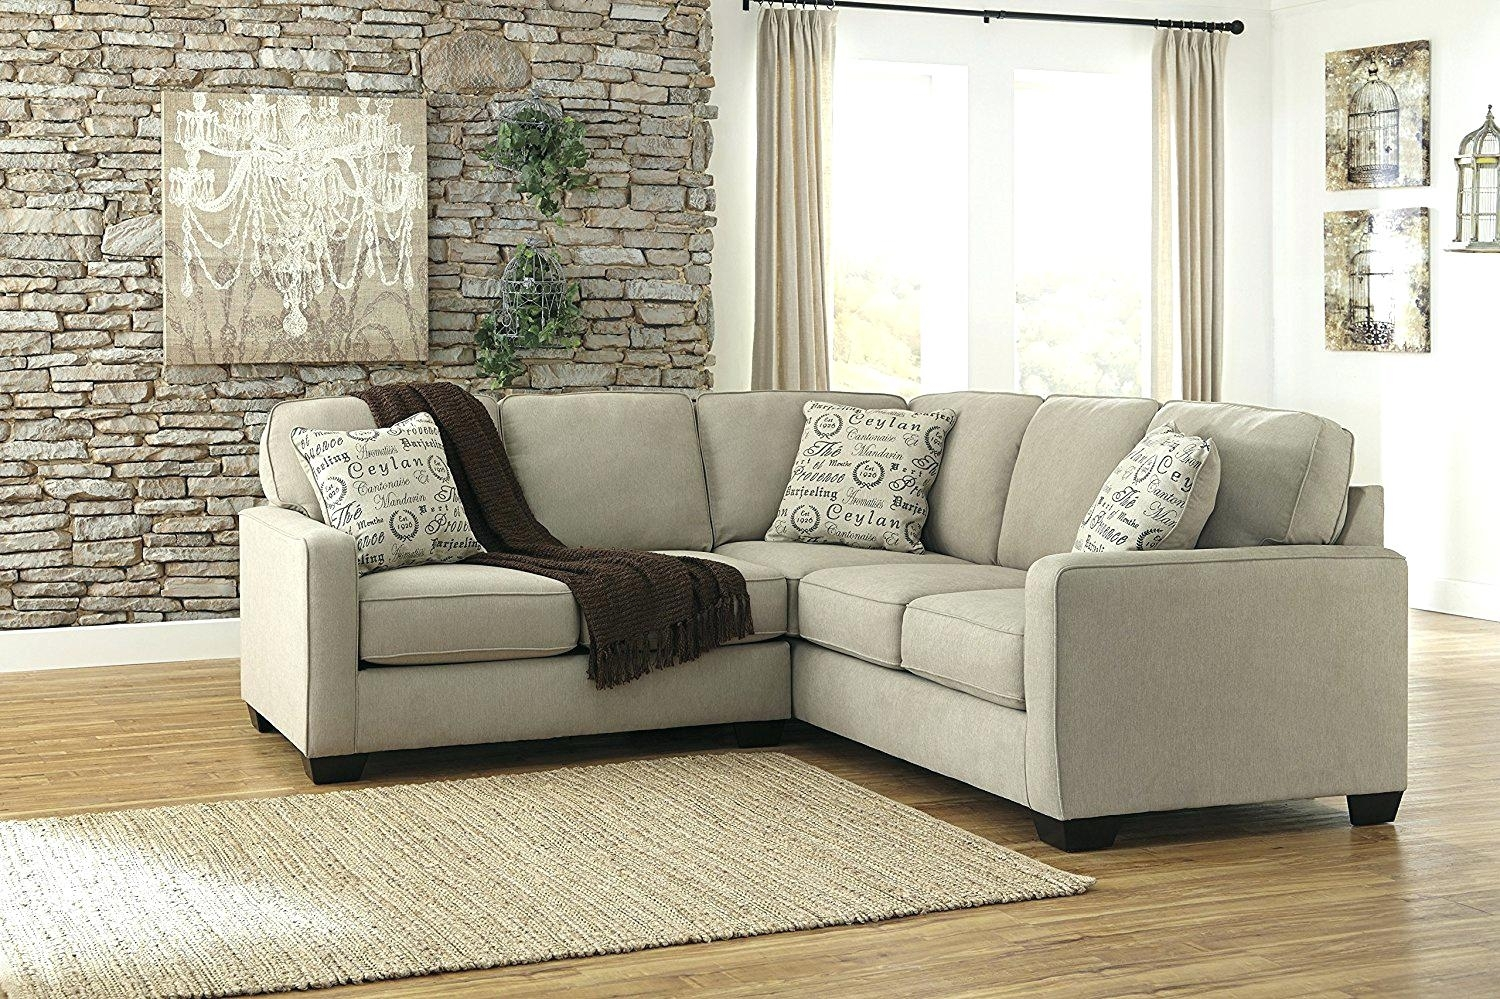 Ashley Furniture Sectionals Sectional Slipcovers Canada Sofa Table within Wilmington Nc Sectional Sofas (Image 2 of 10)